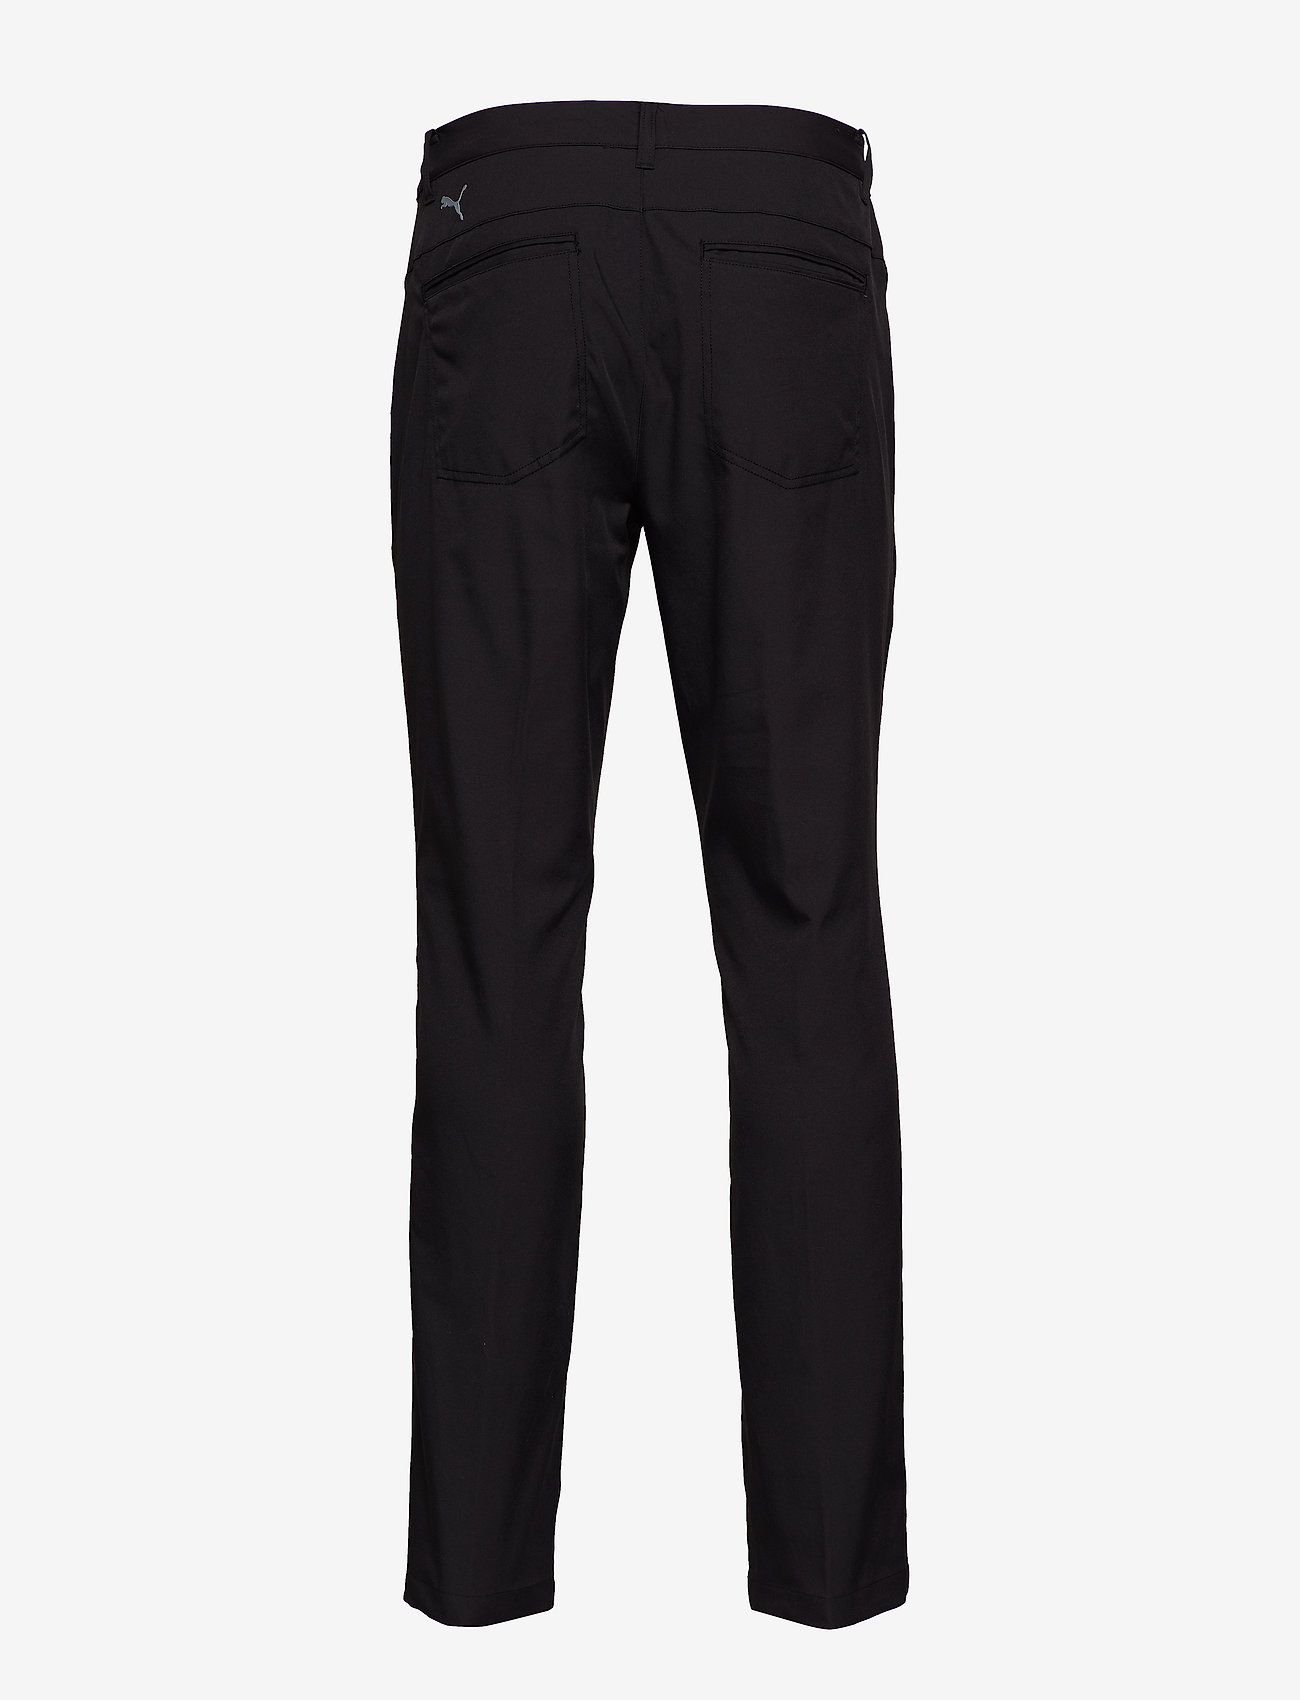 PUMA Golf - Jackpot 5 Pocket Pant - golfbukser - puma black - 1